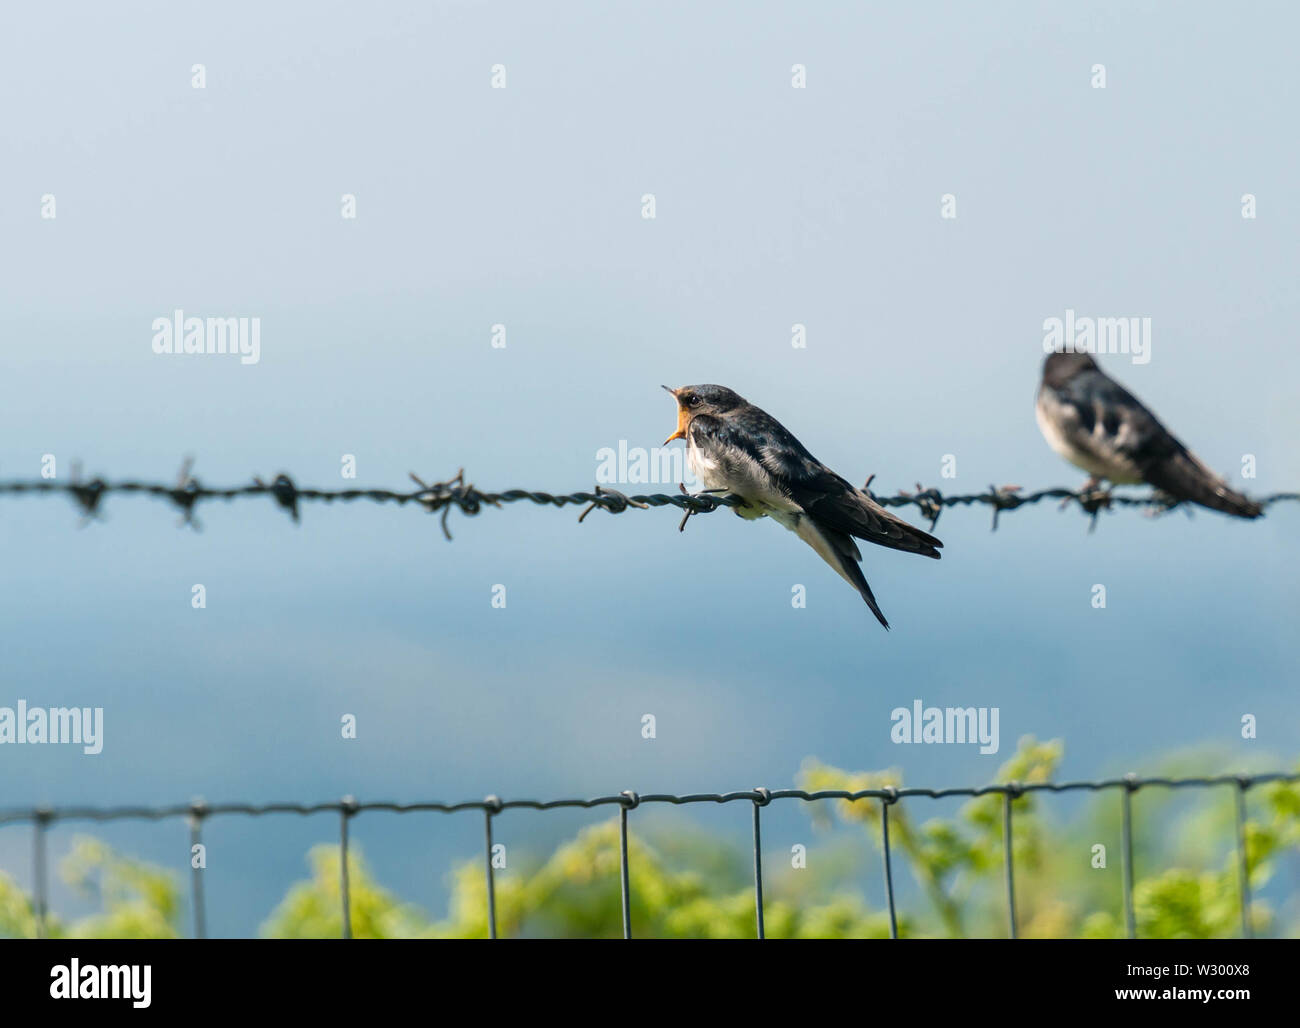 Immature Swallow (Hirundo rustica) with it's bill wide open waiting for a meal from It's parents. Kington Herefordshire UK. 2019 - Stock Image